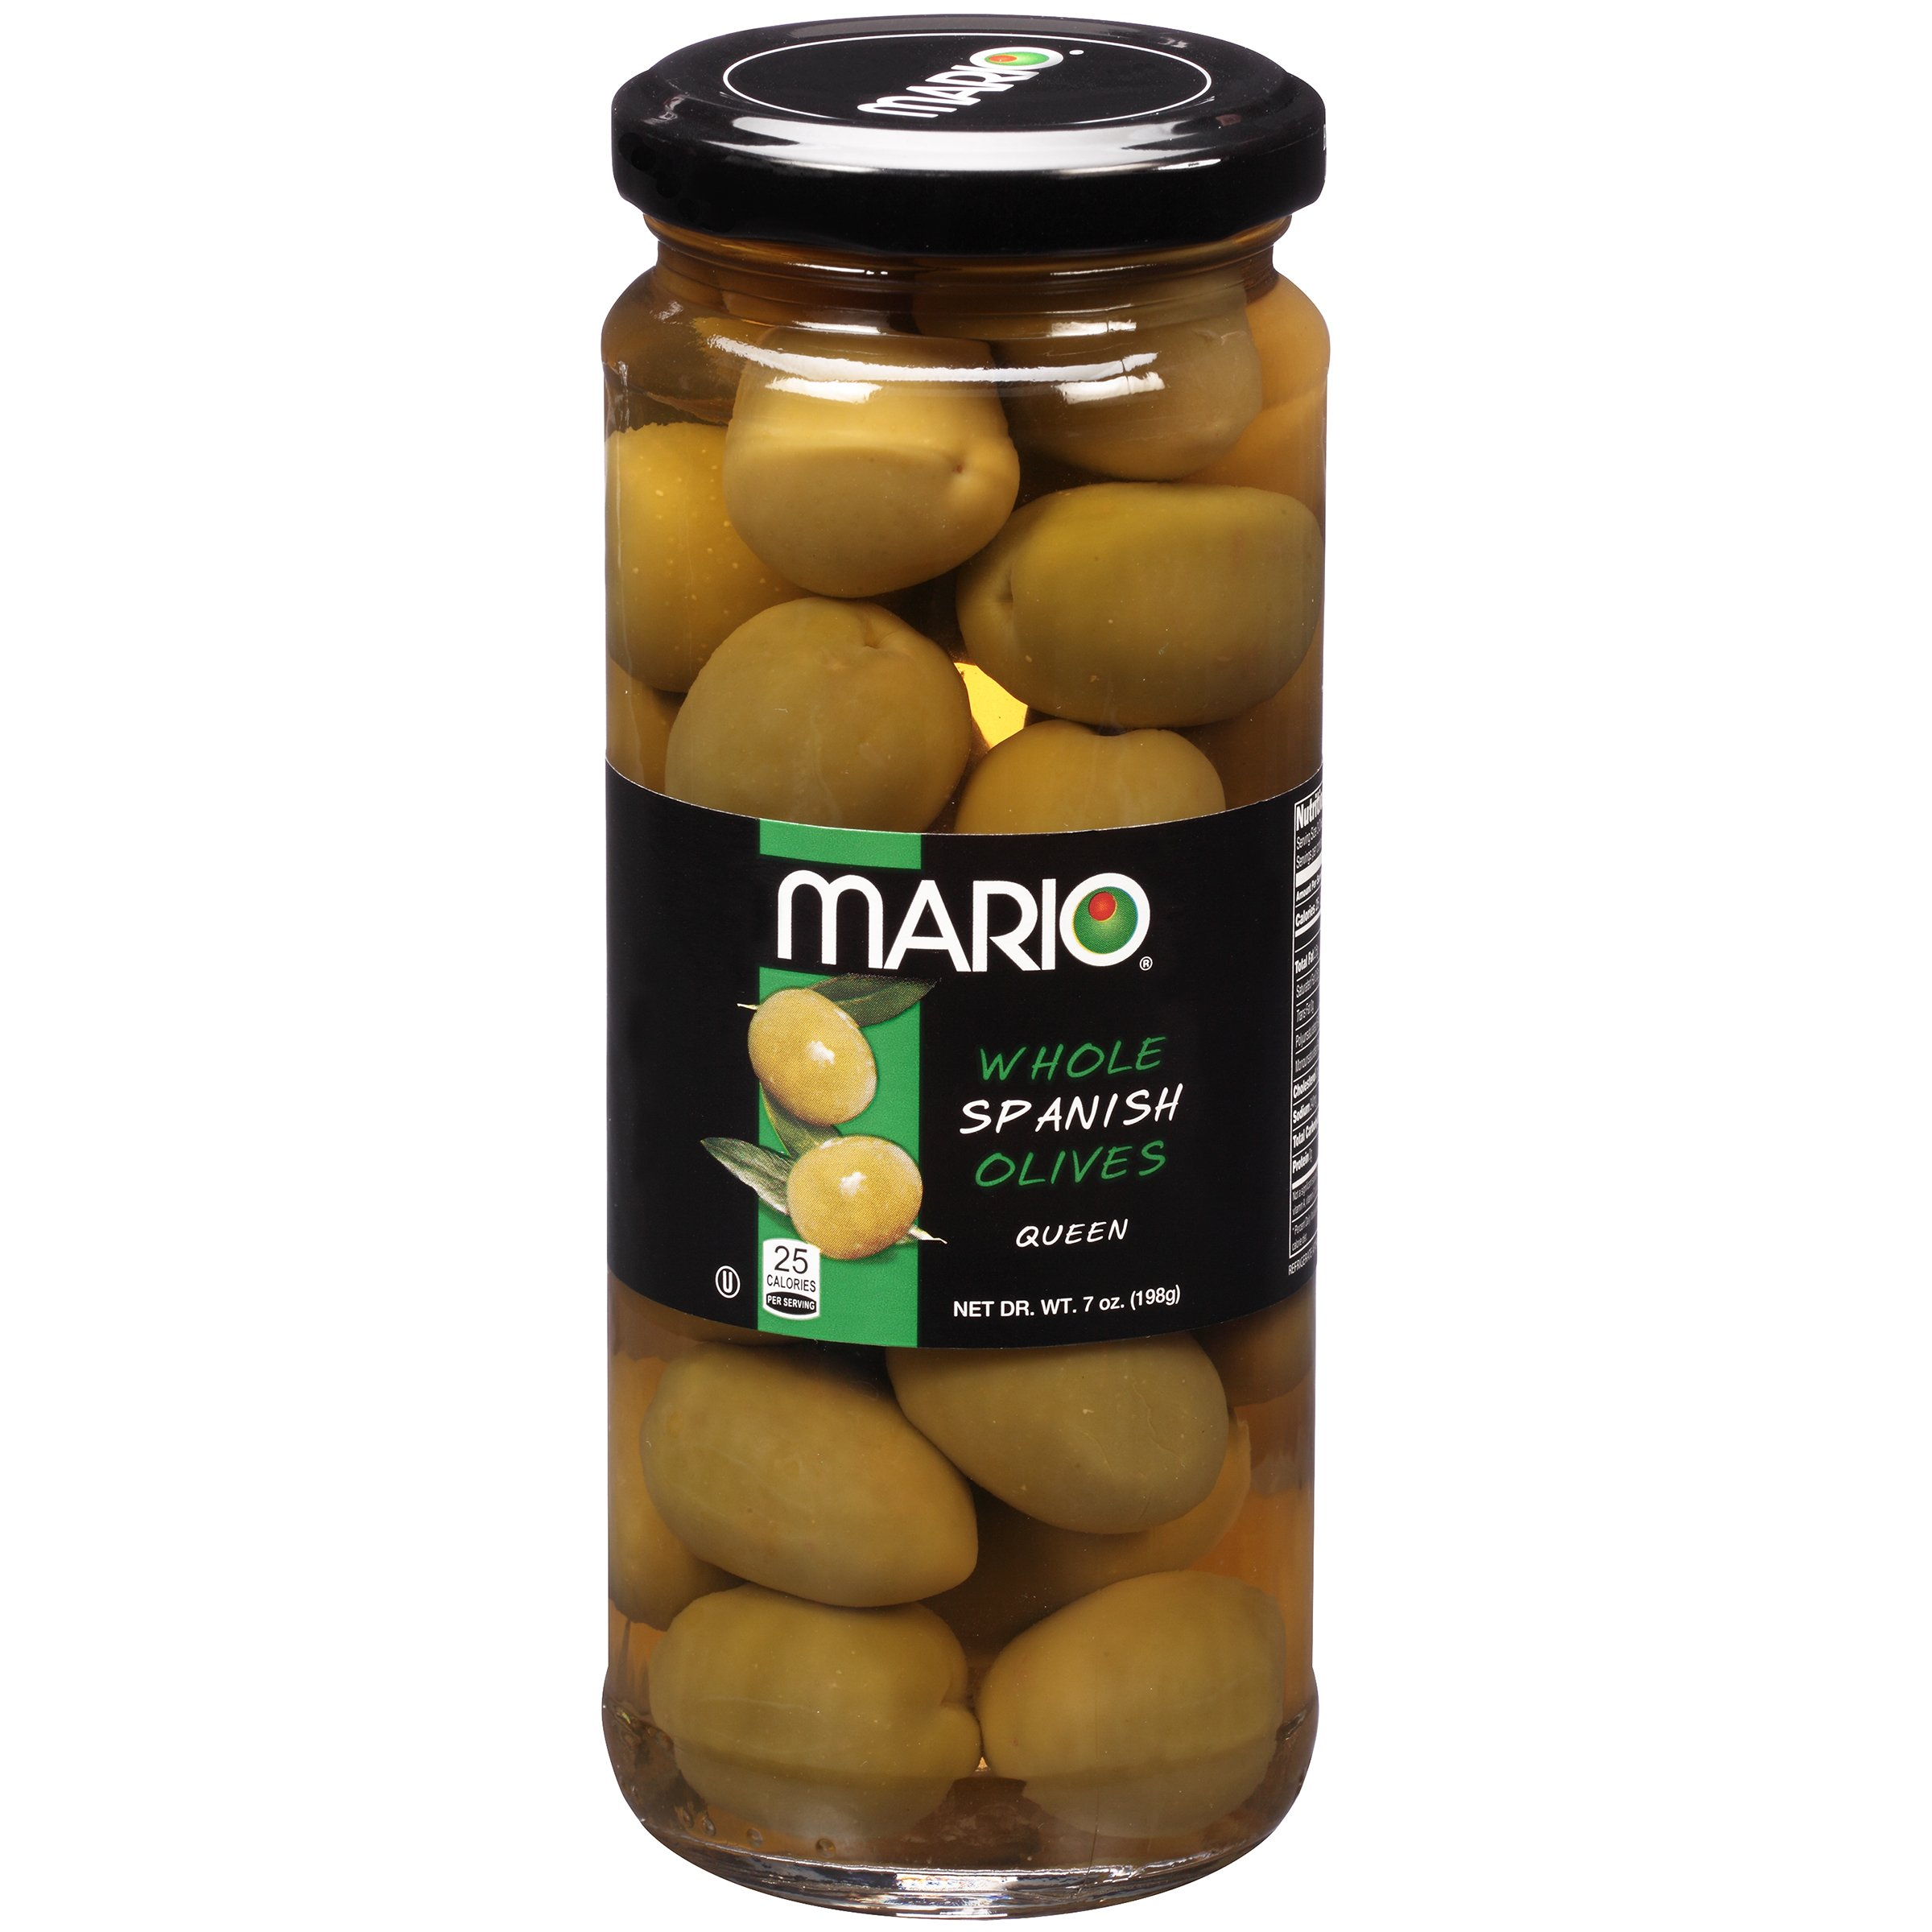 Mario Queen Spanish Olives 7OZ (Pack of 12)